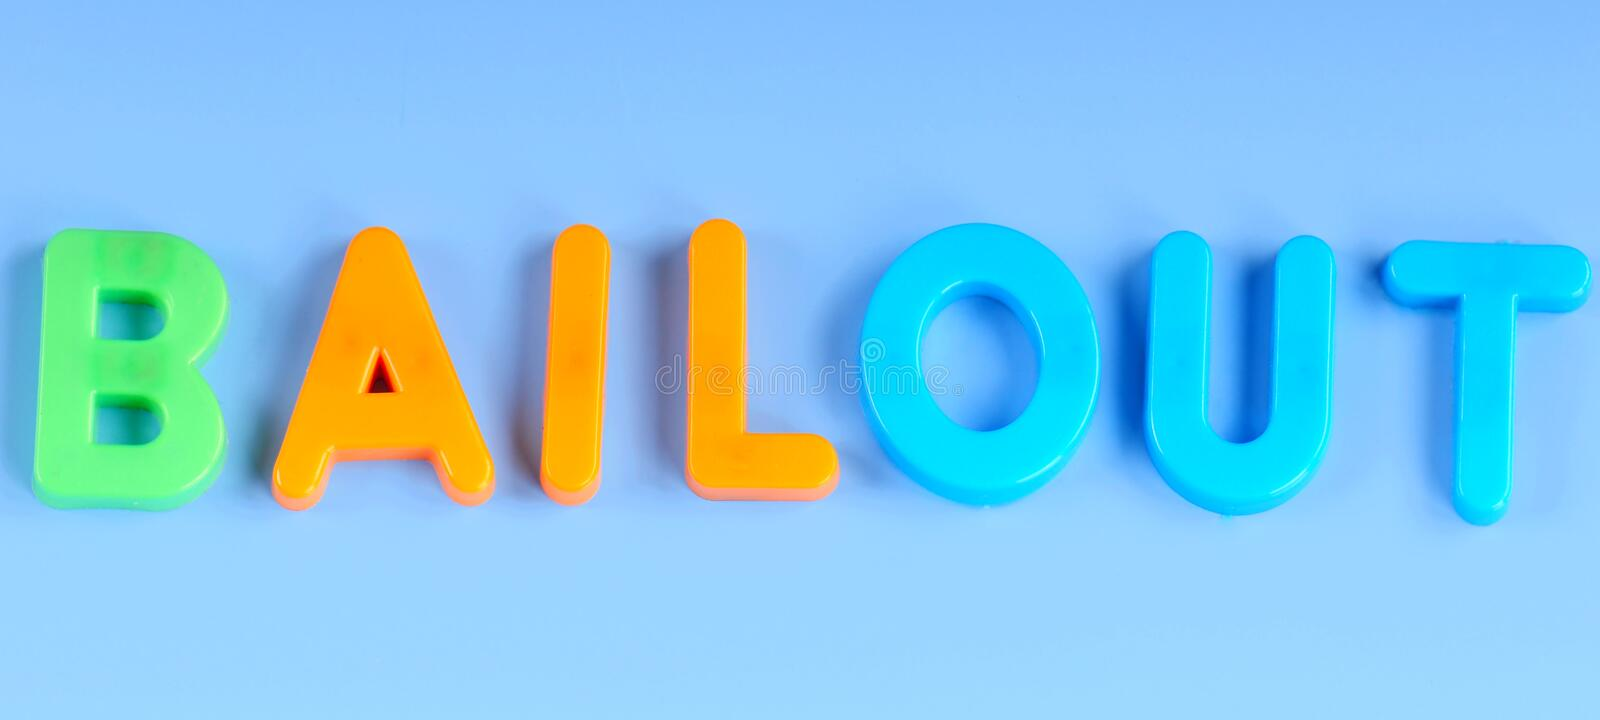 Download Bailout In Magnets Stock Images - Image: 7918404